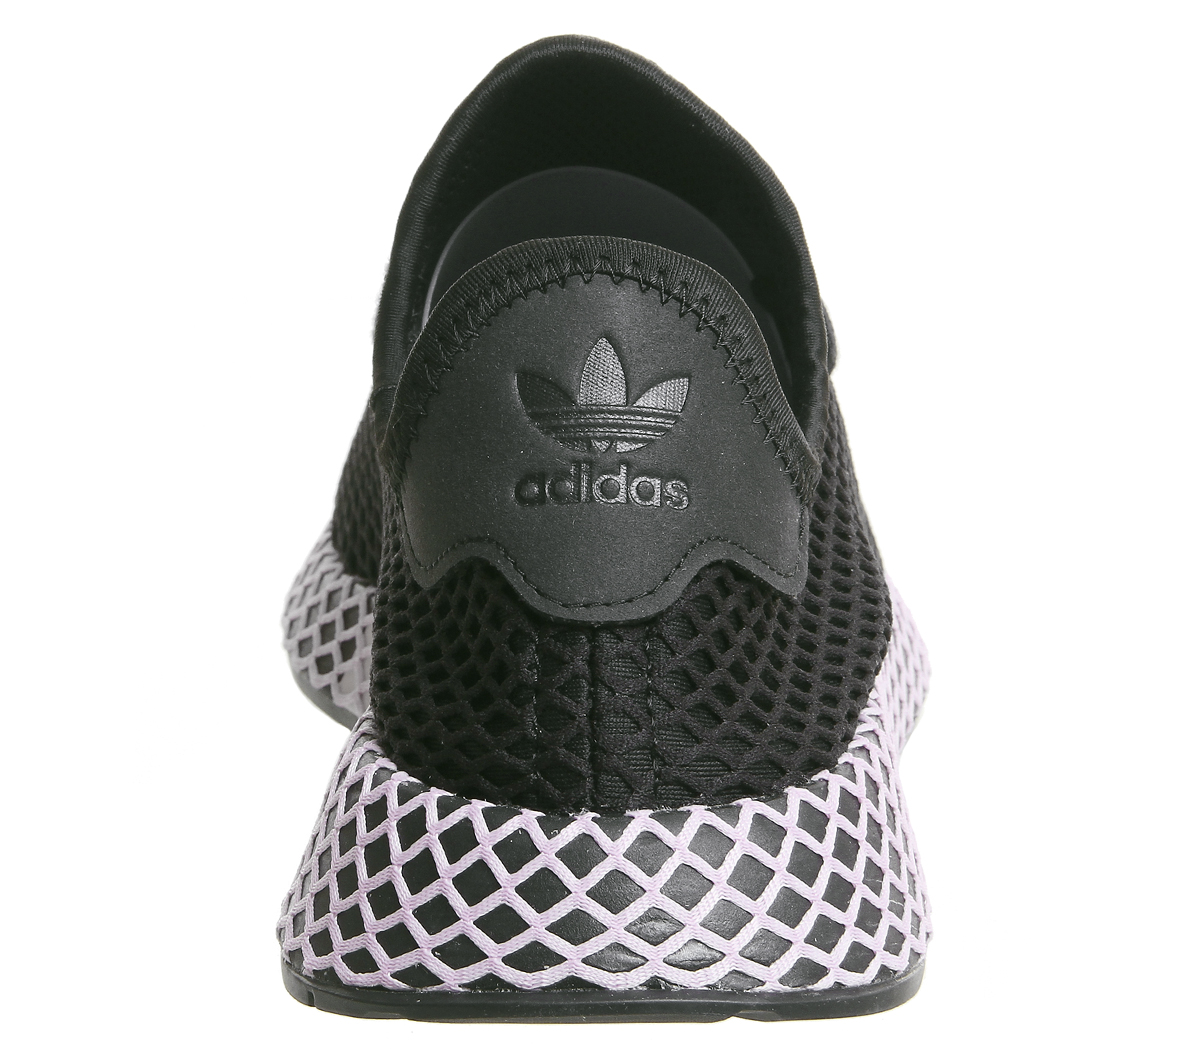 78b261dea Womens Adidas Deerupt Trainers Core Black Clear Lilac F Trainers ...